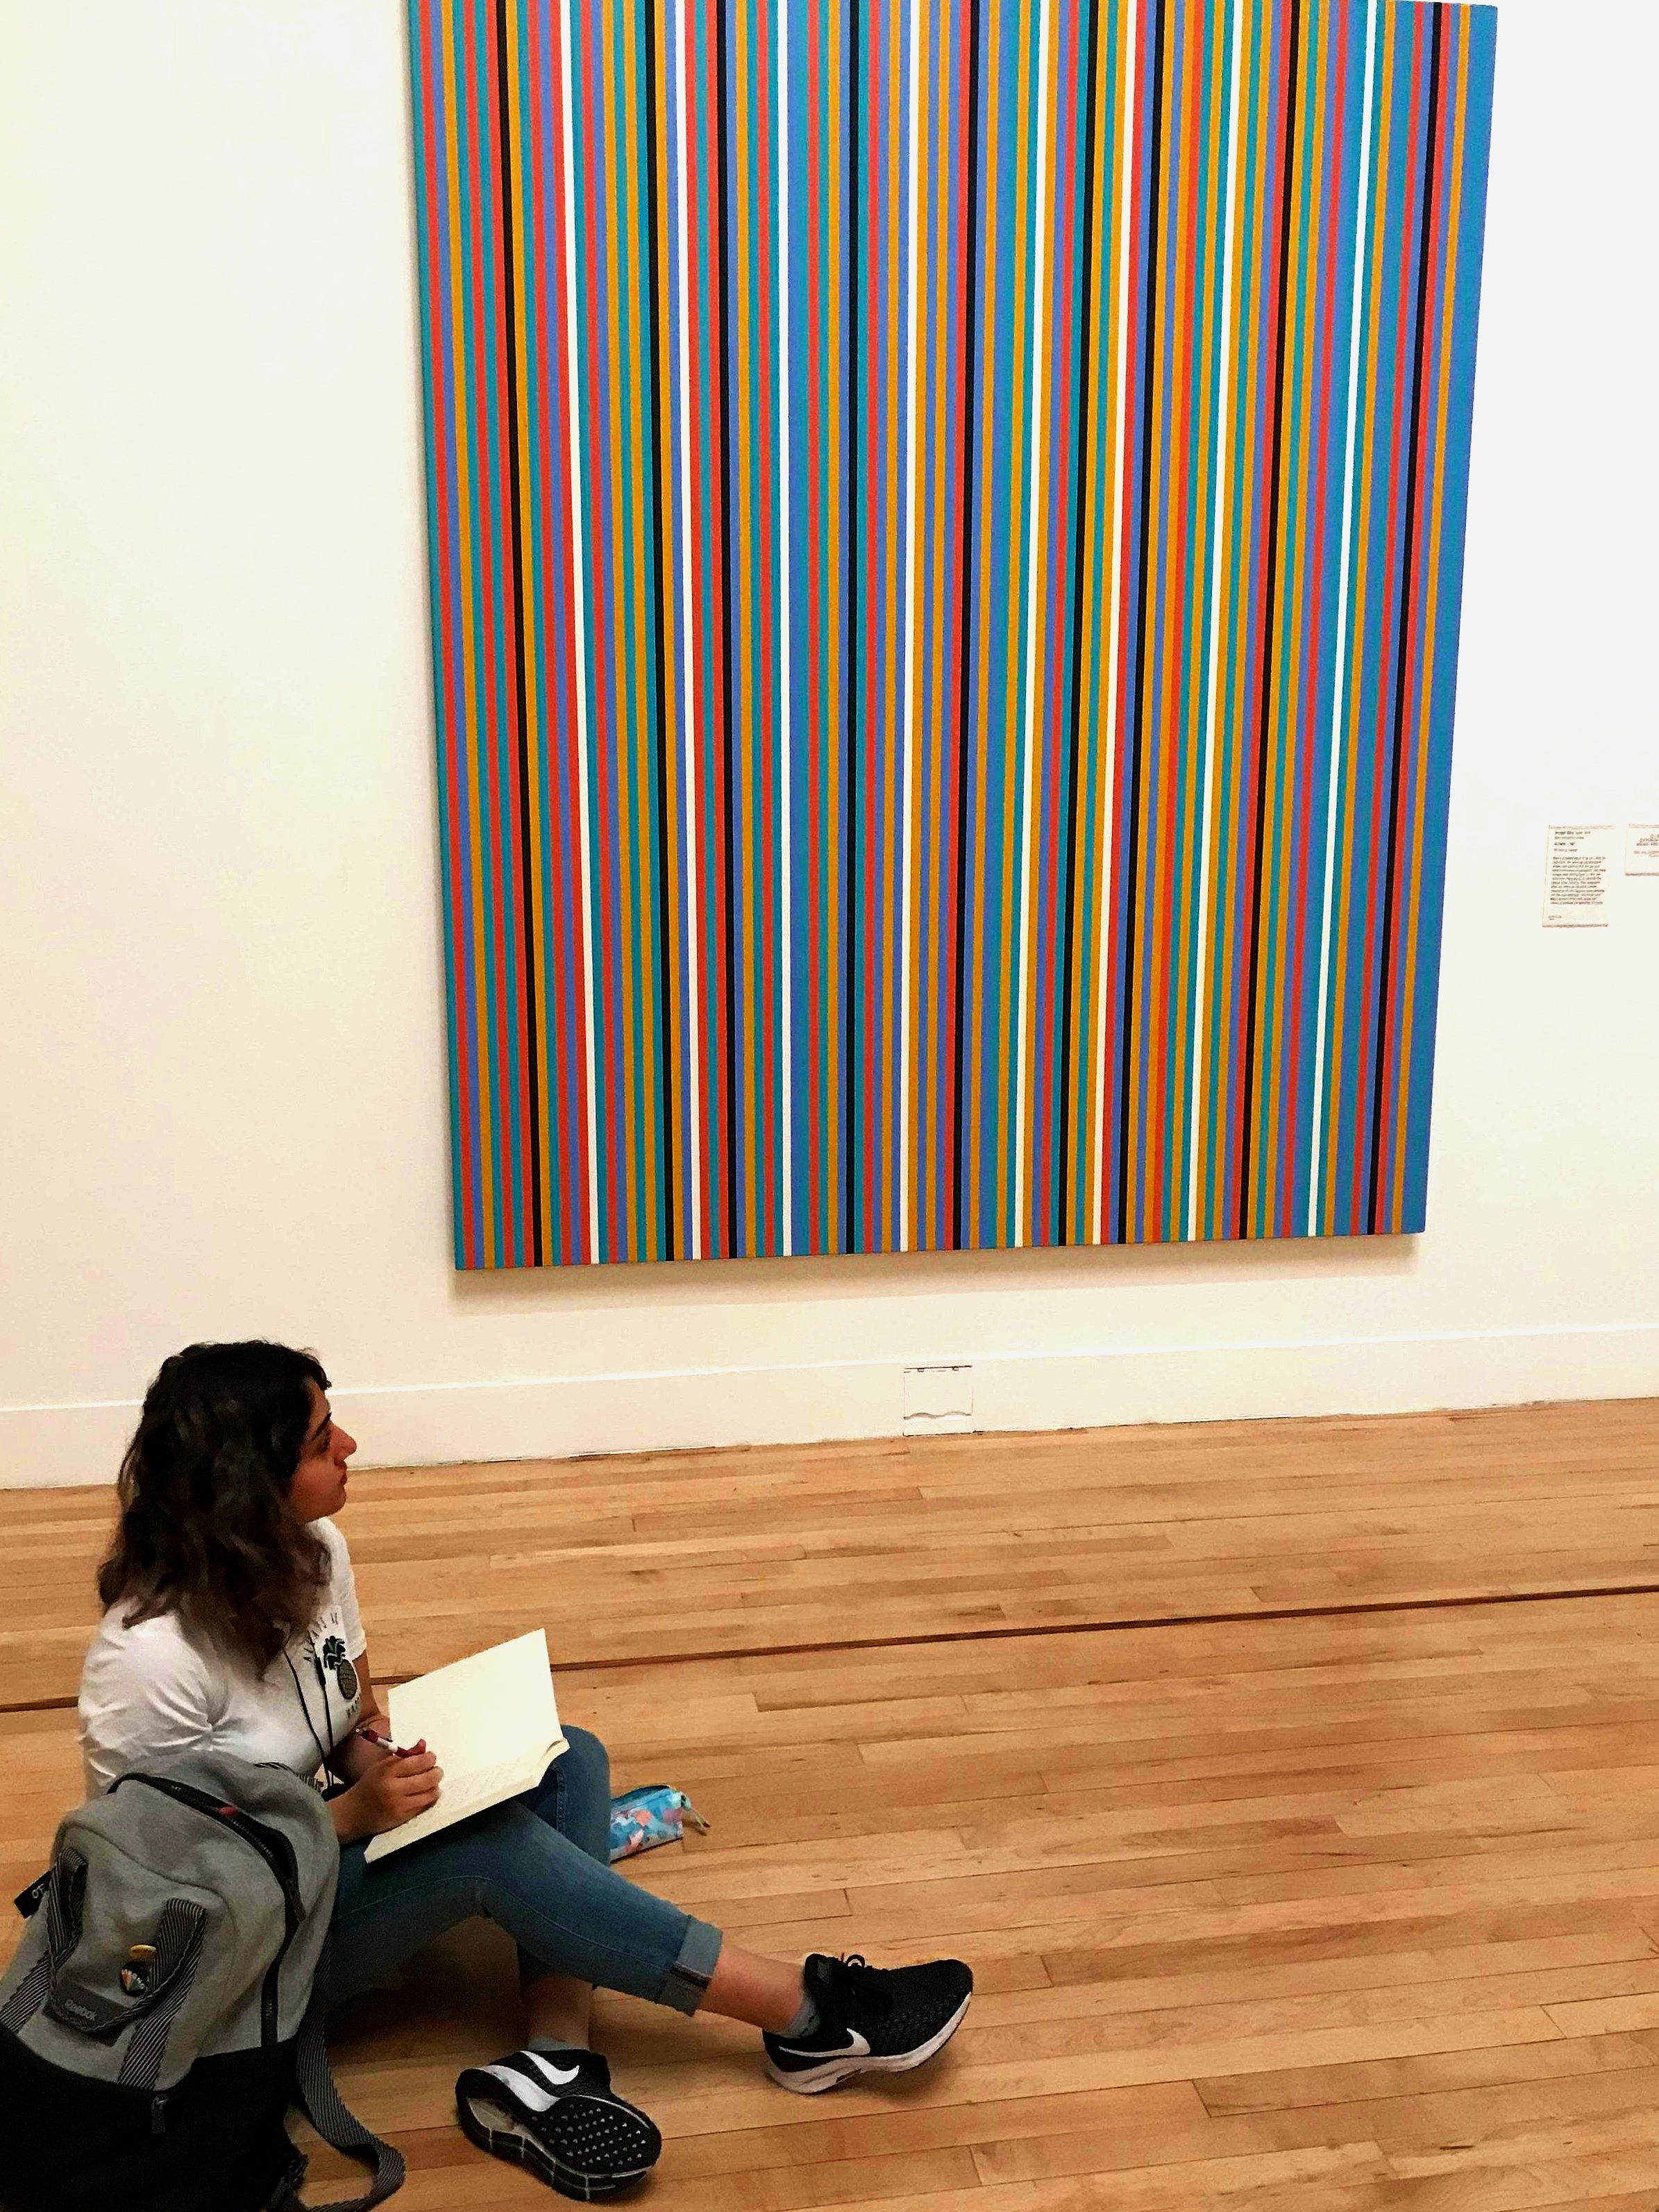 Meet field school blogger Lily, spotted here enjoying her first engagement with one of her assigned artists, Bridget Riley, at the Tate Britain.